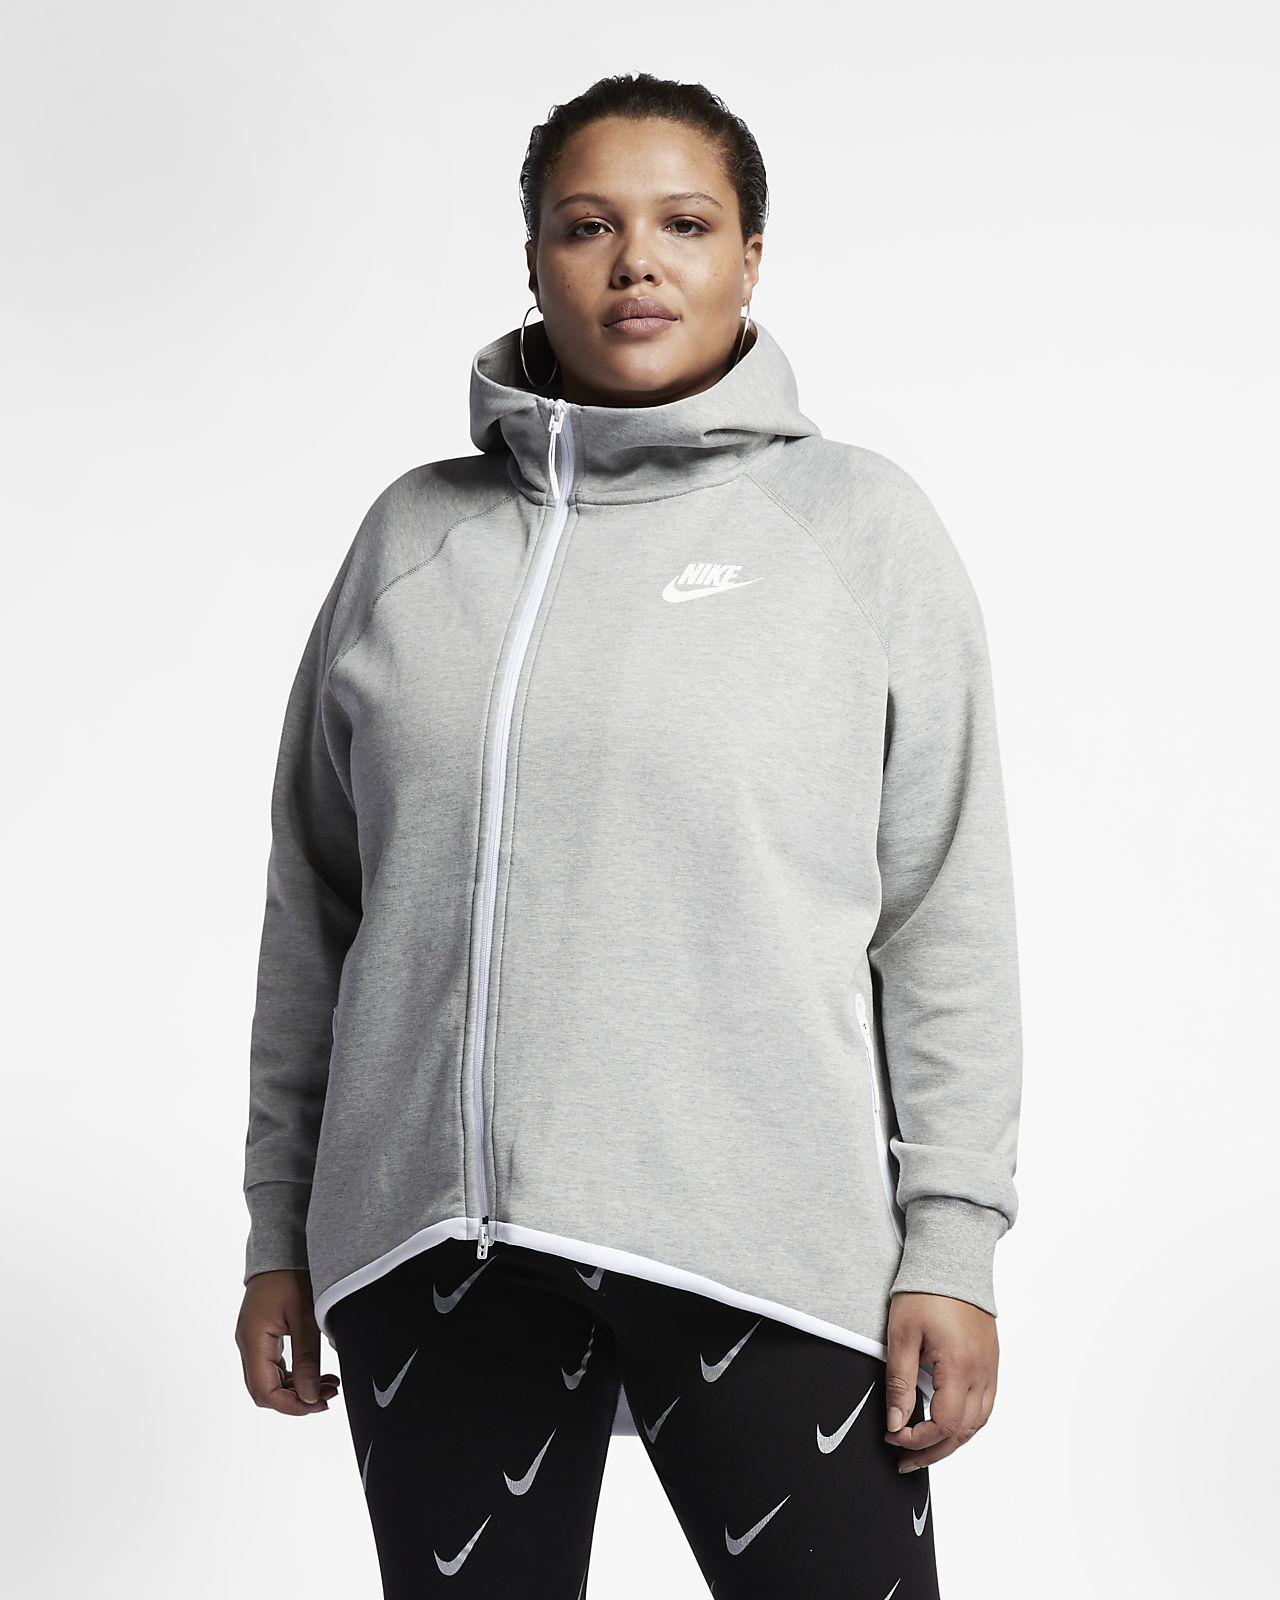 957dd57c56 Nike Sportswear Tech Fleece Women's Full-Zip Cape (Plus Size)